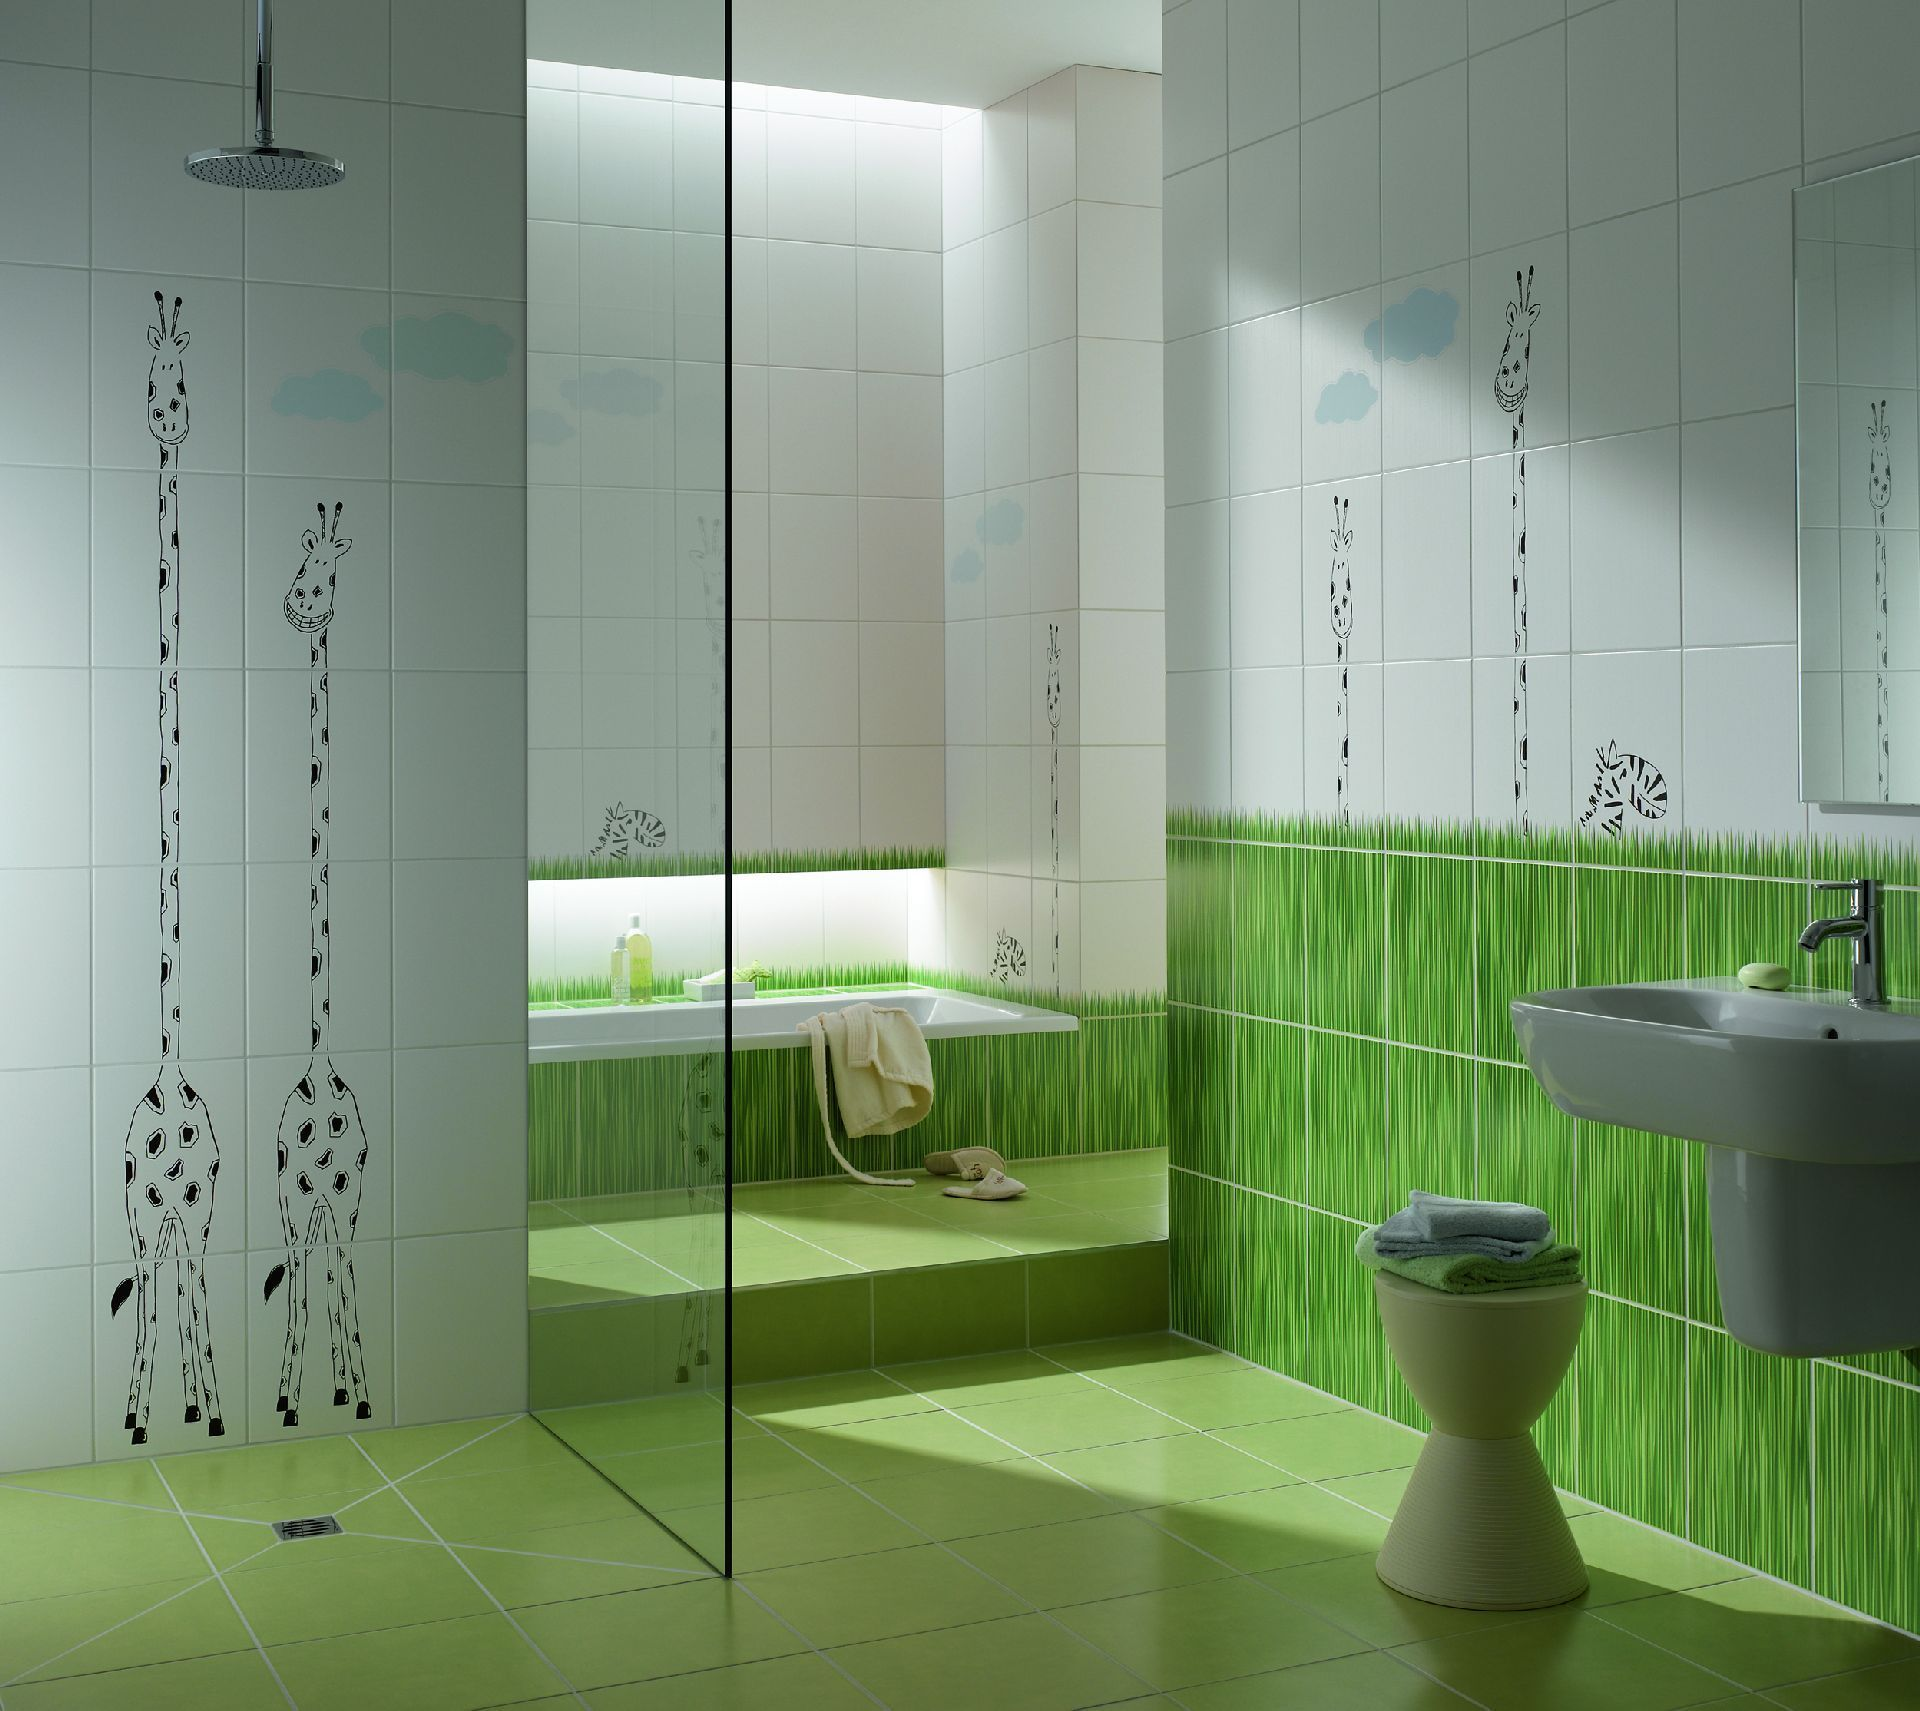 Steuler fliesen  LOUIS & ELLA bath tiles- Steuler-Fliesen GmbH | Home | Pinterest